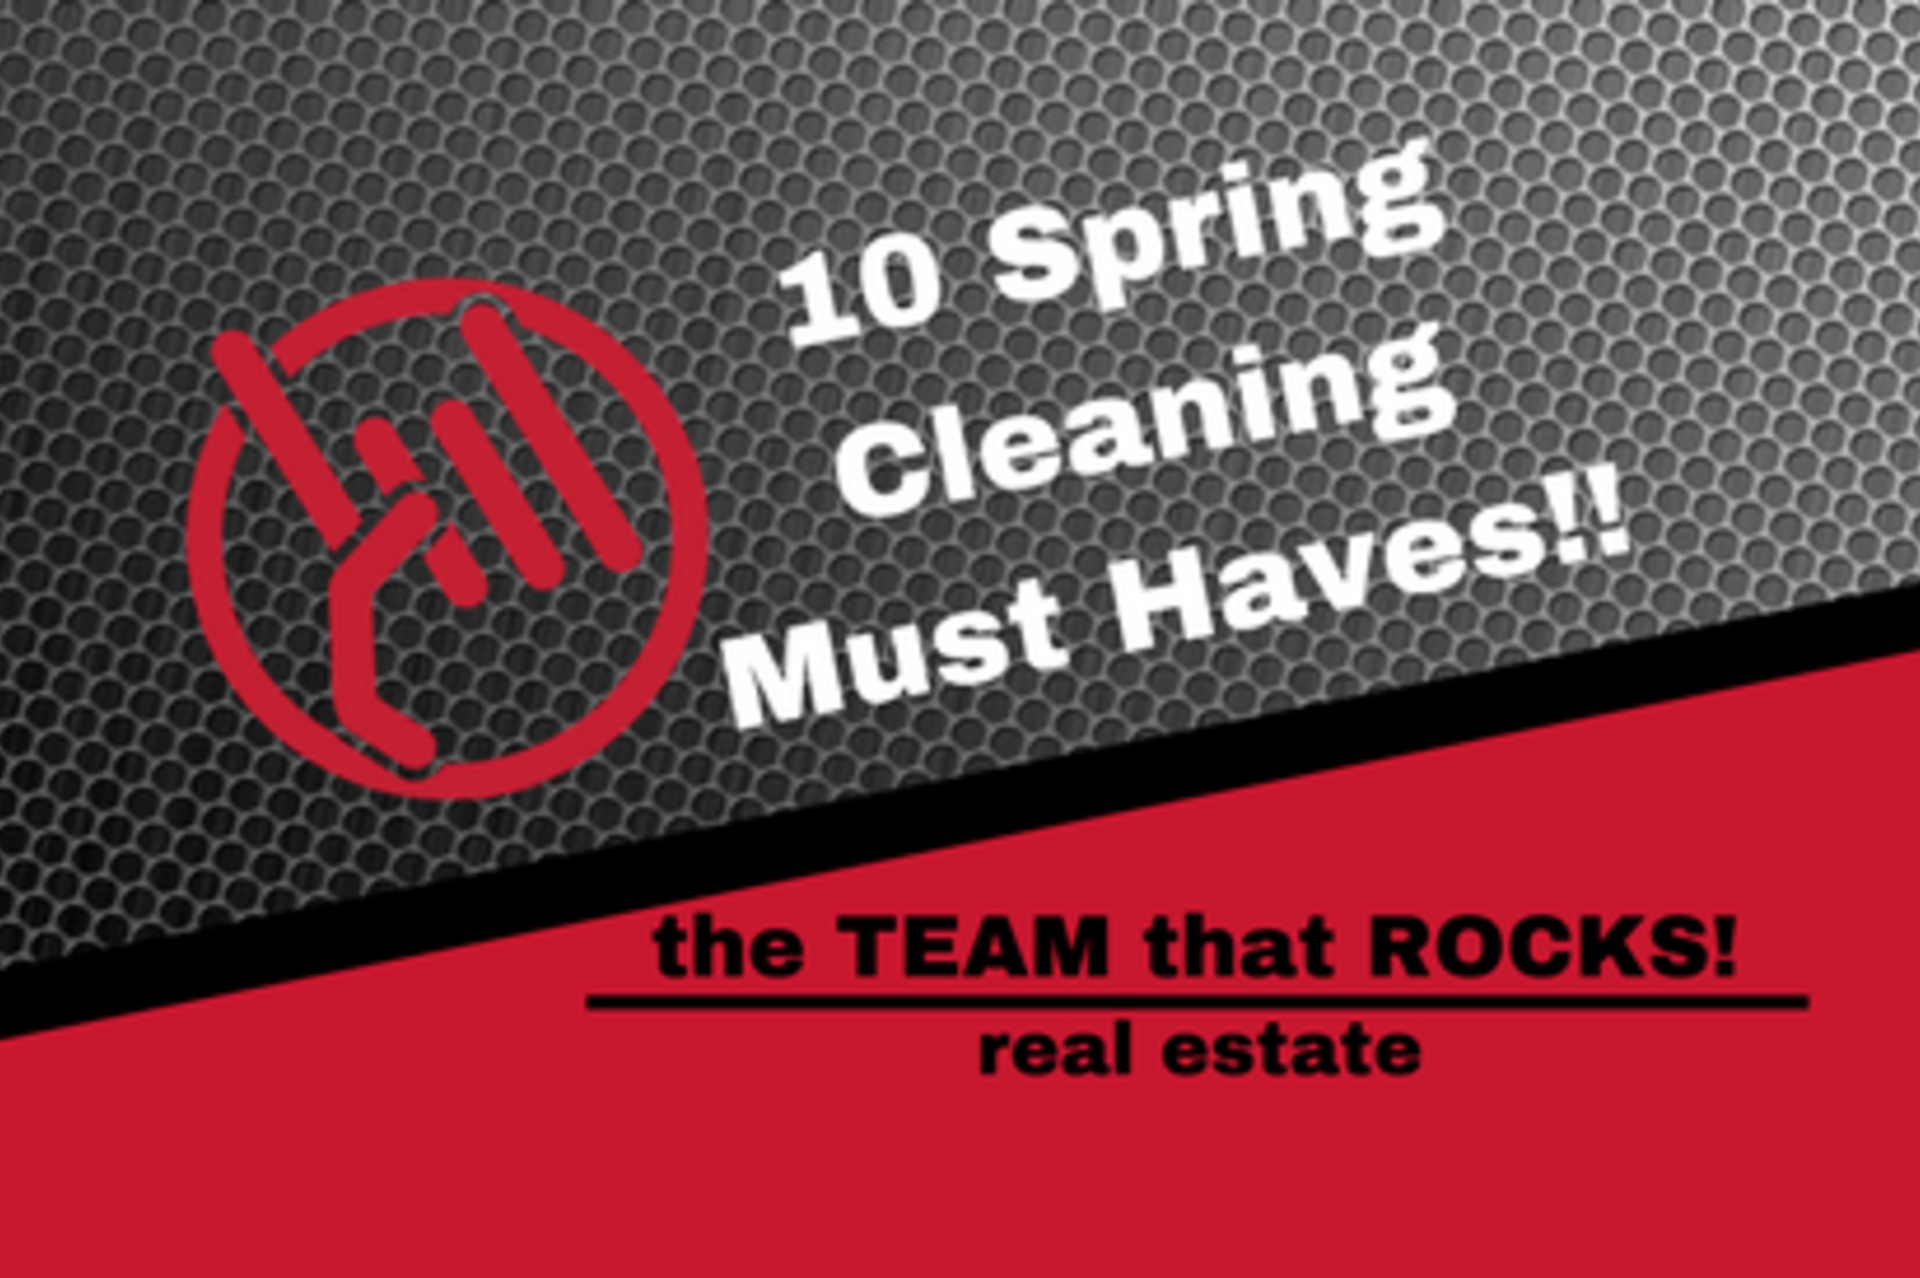 10 Spring Cleaning Must Haves!!